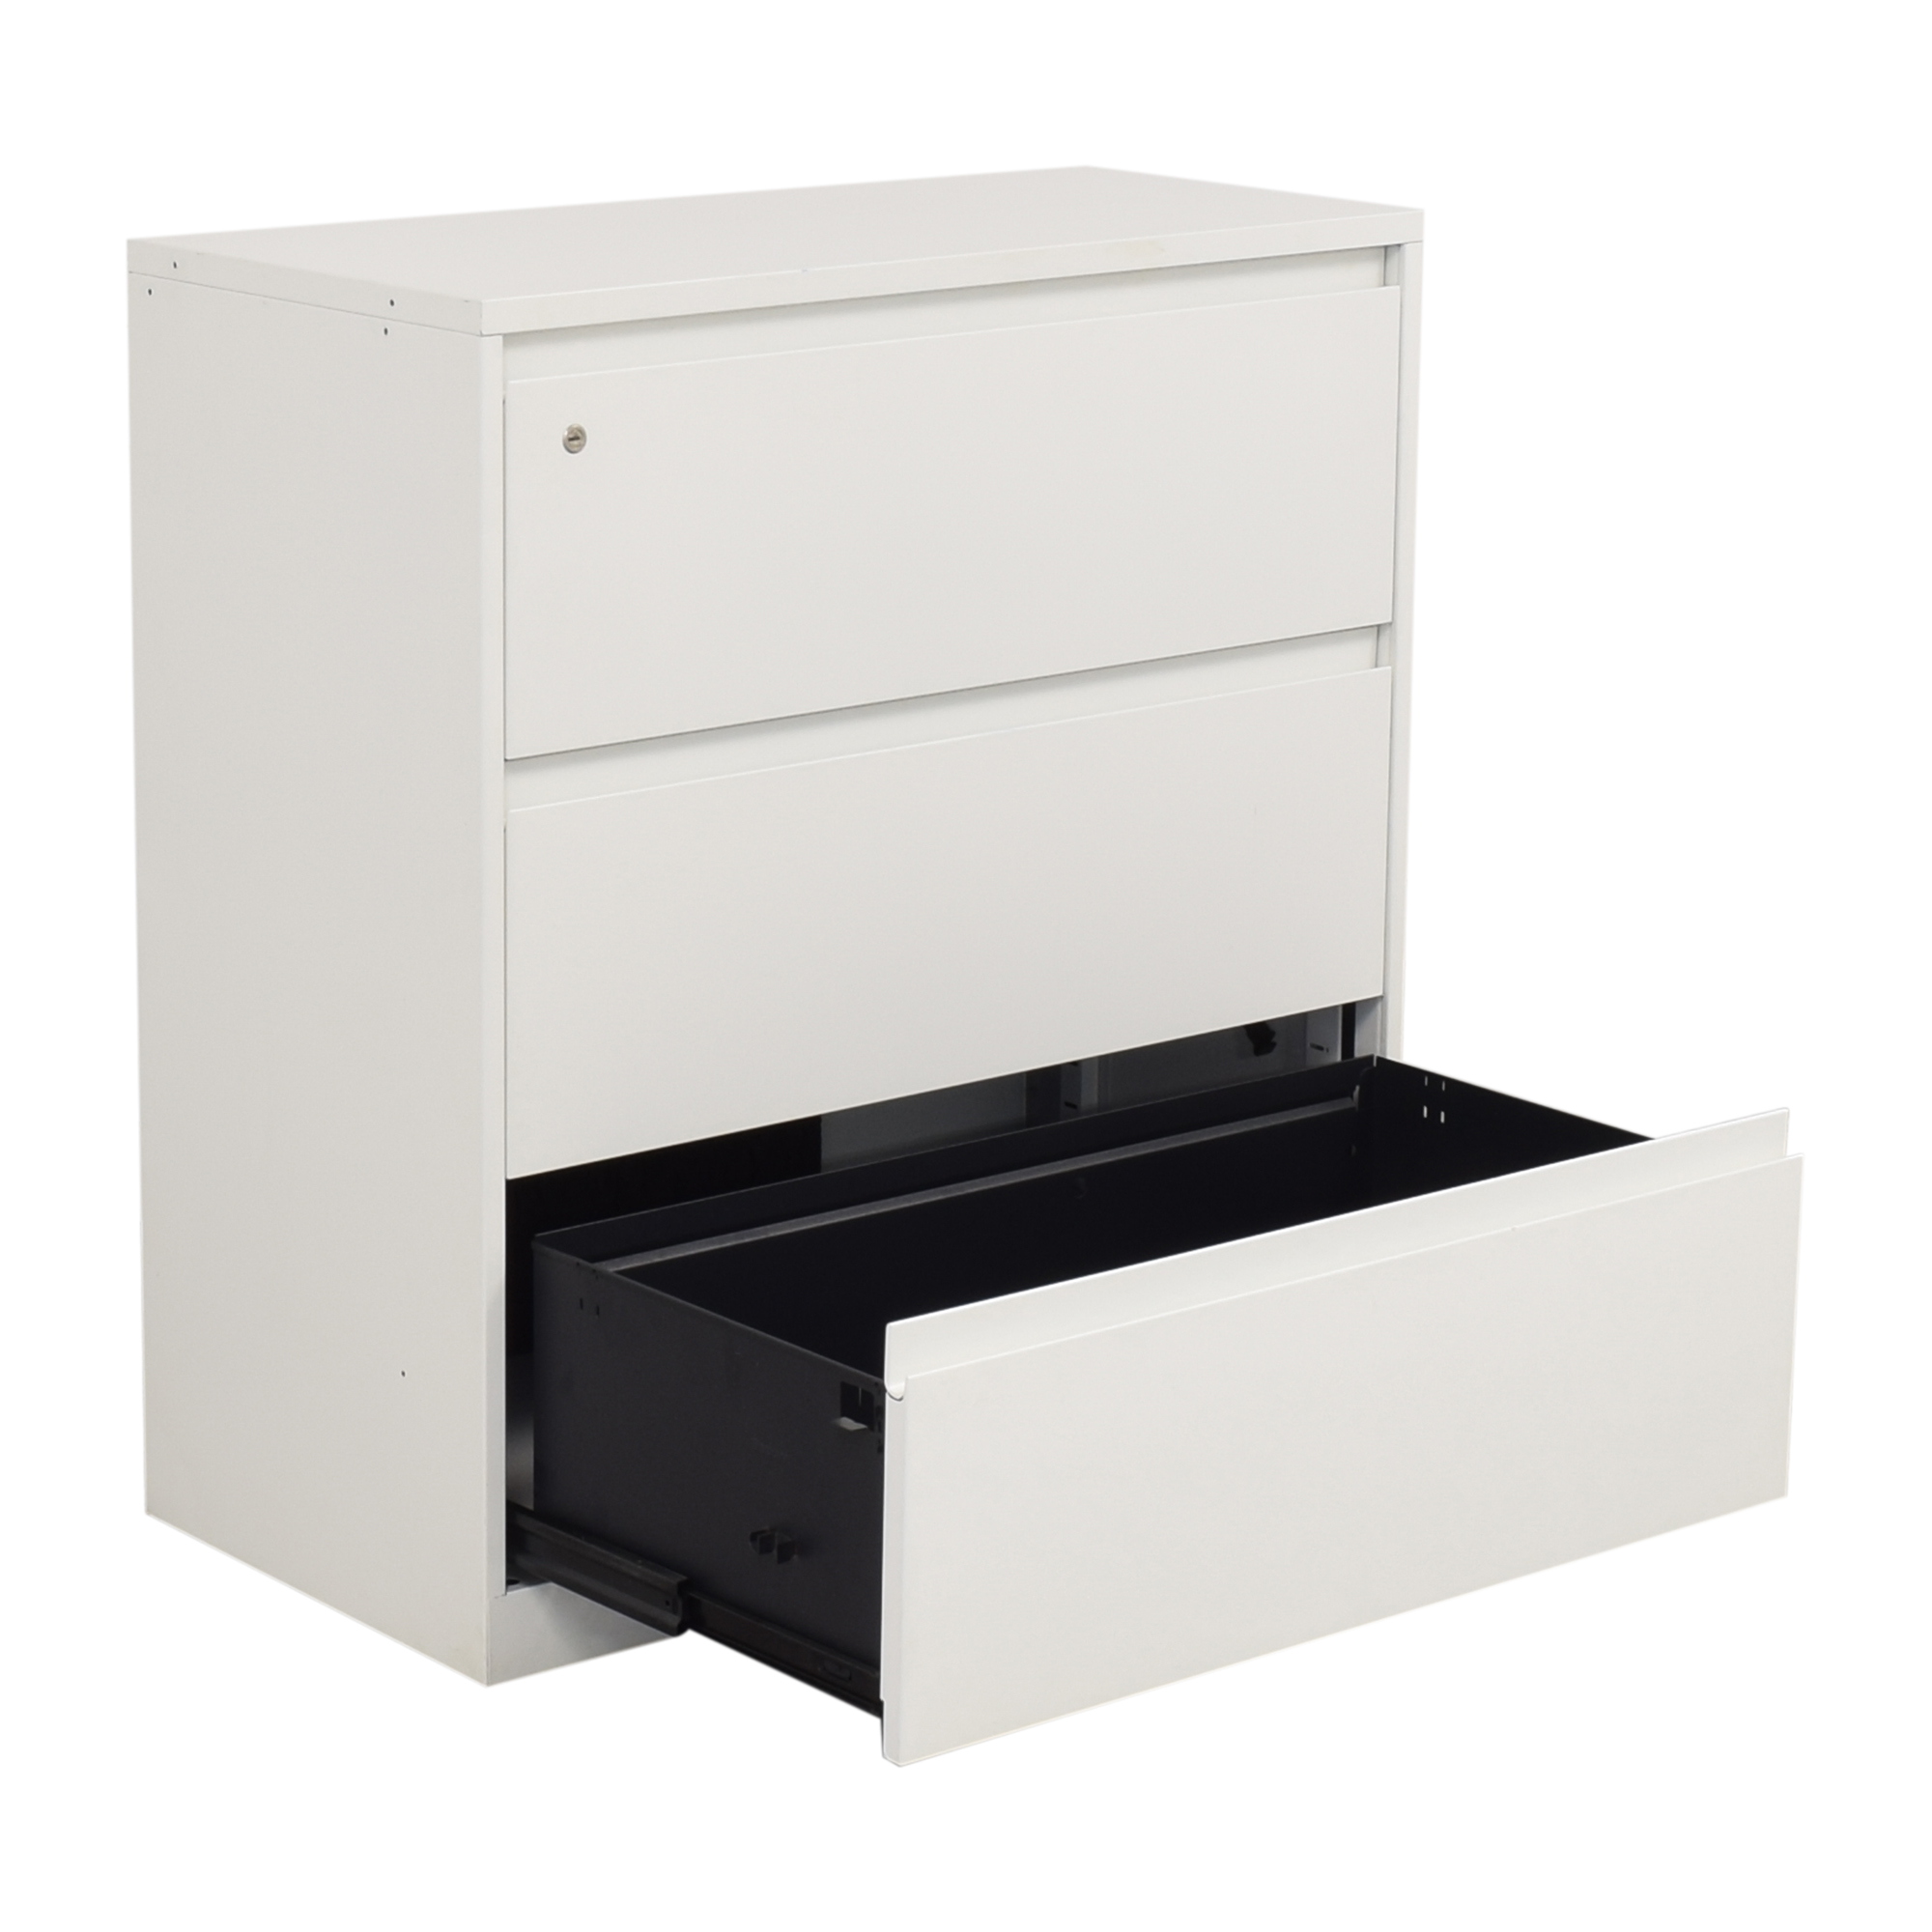 Steelcase Steelcase Three Drawer Lateral Filing Cabinet dimensions